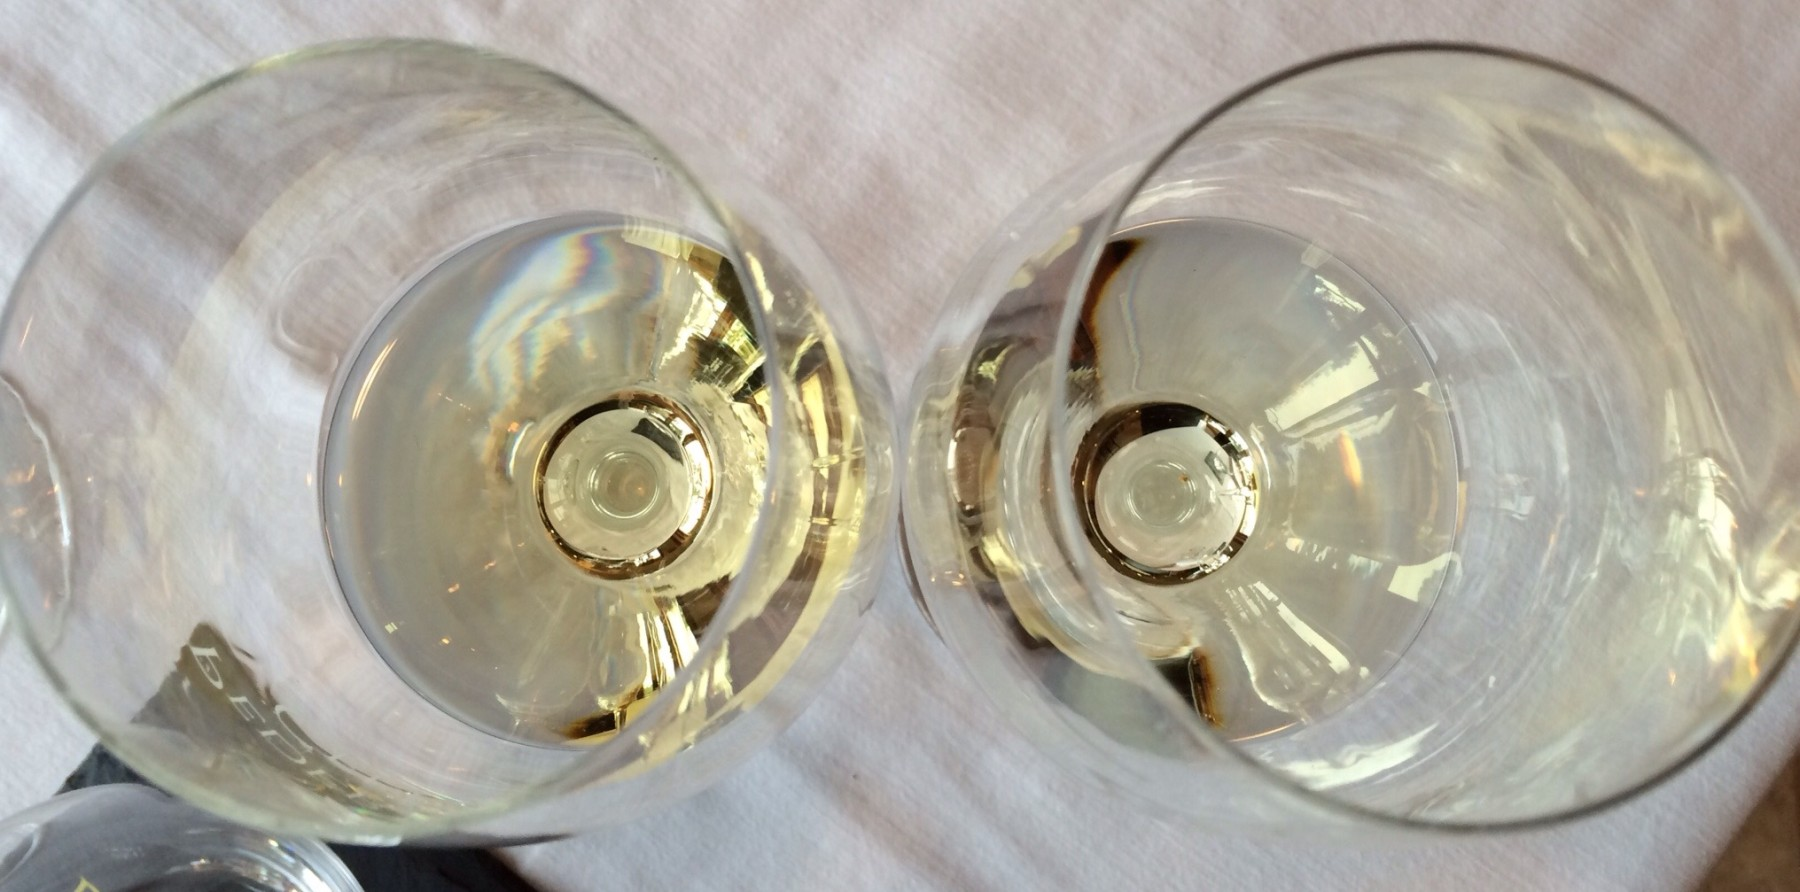 Viognier in wine glasses